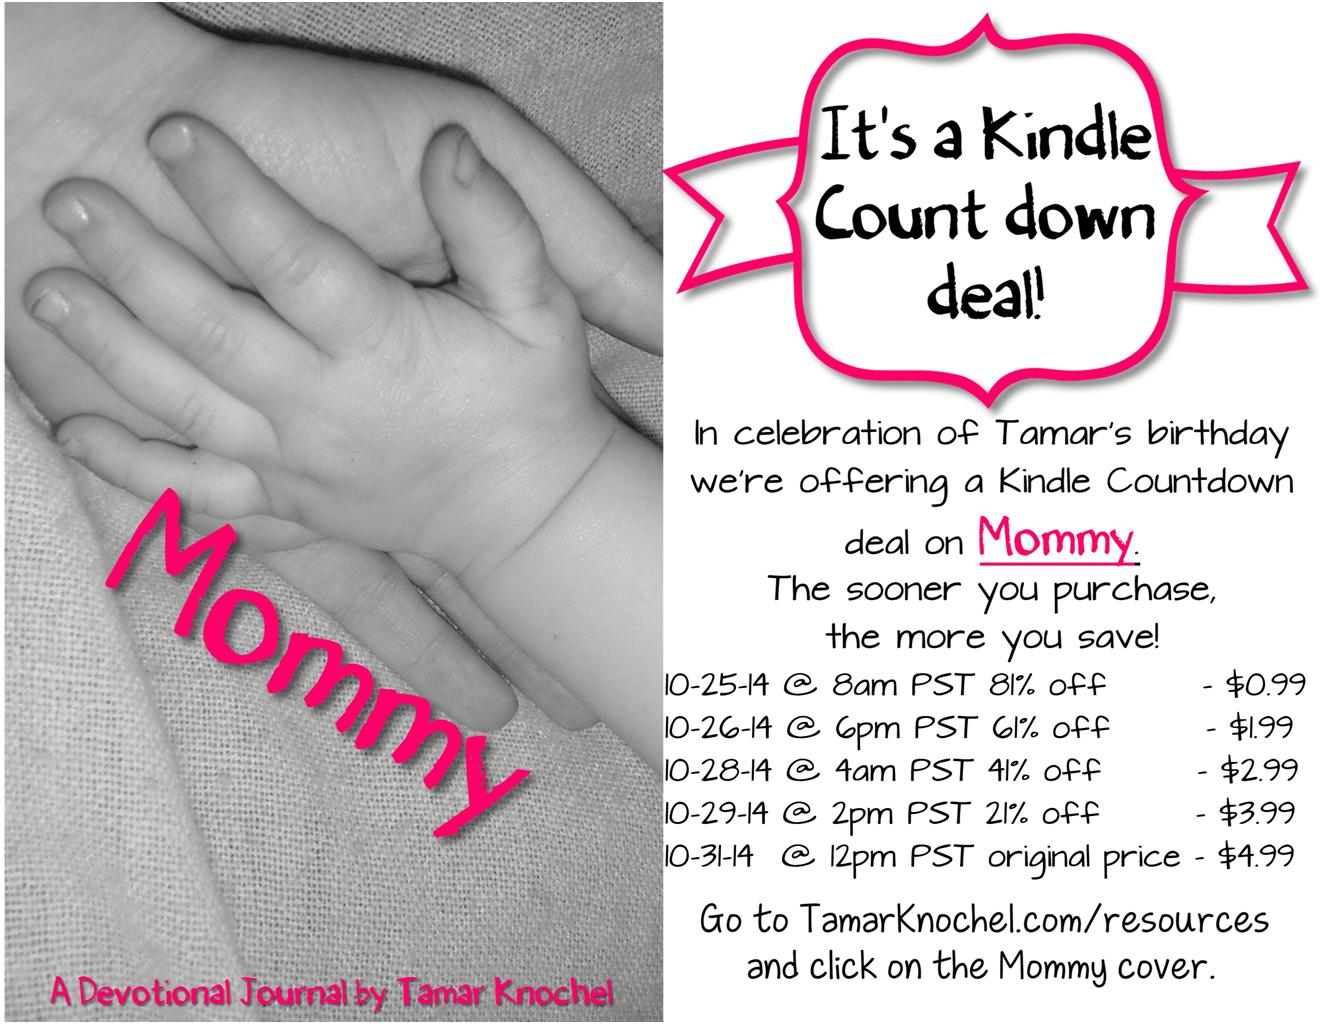 Book Signing & Kindle Countdown Deal | Tamar Knochel